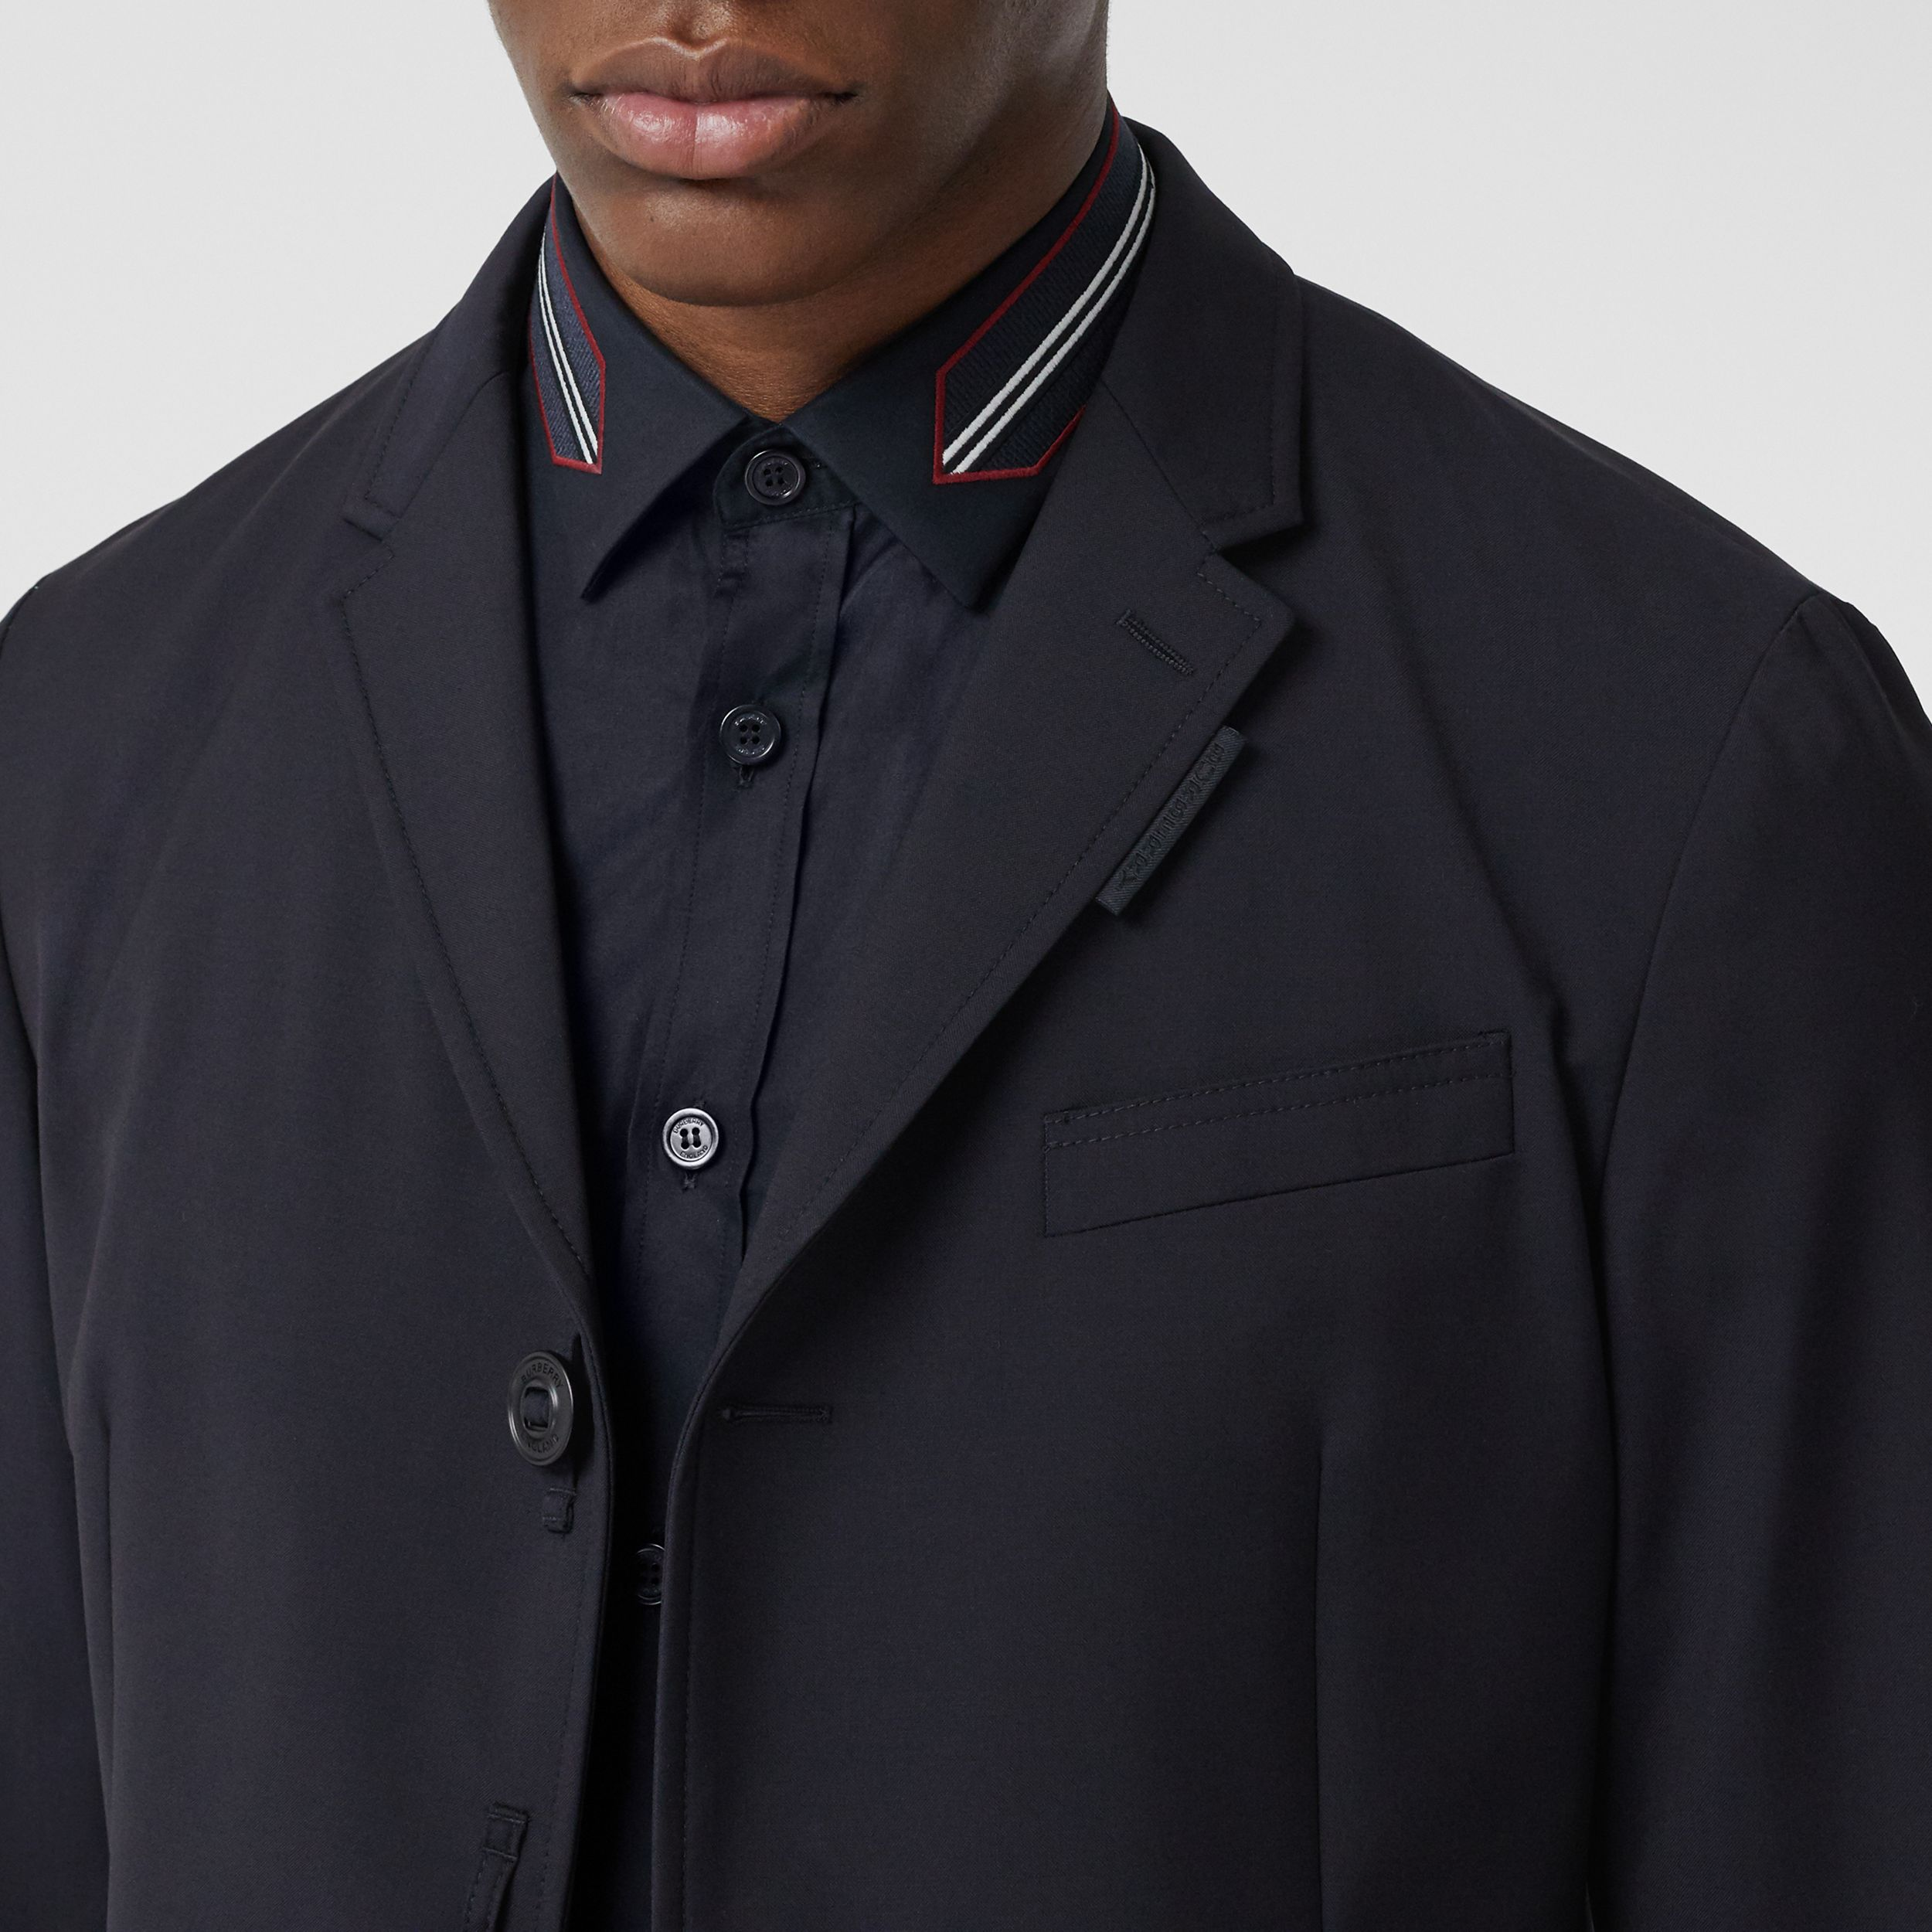 Bonded Wool Tailored Jacket in Navy - Men | Burberry Hong Kong S.A.R. - 2